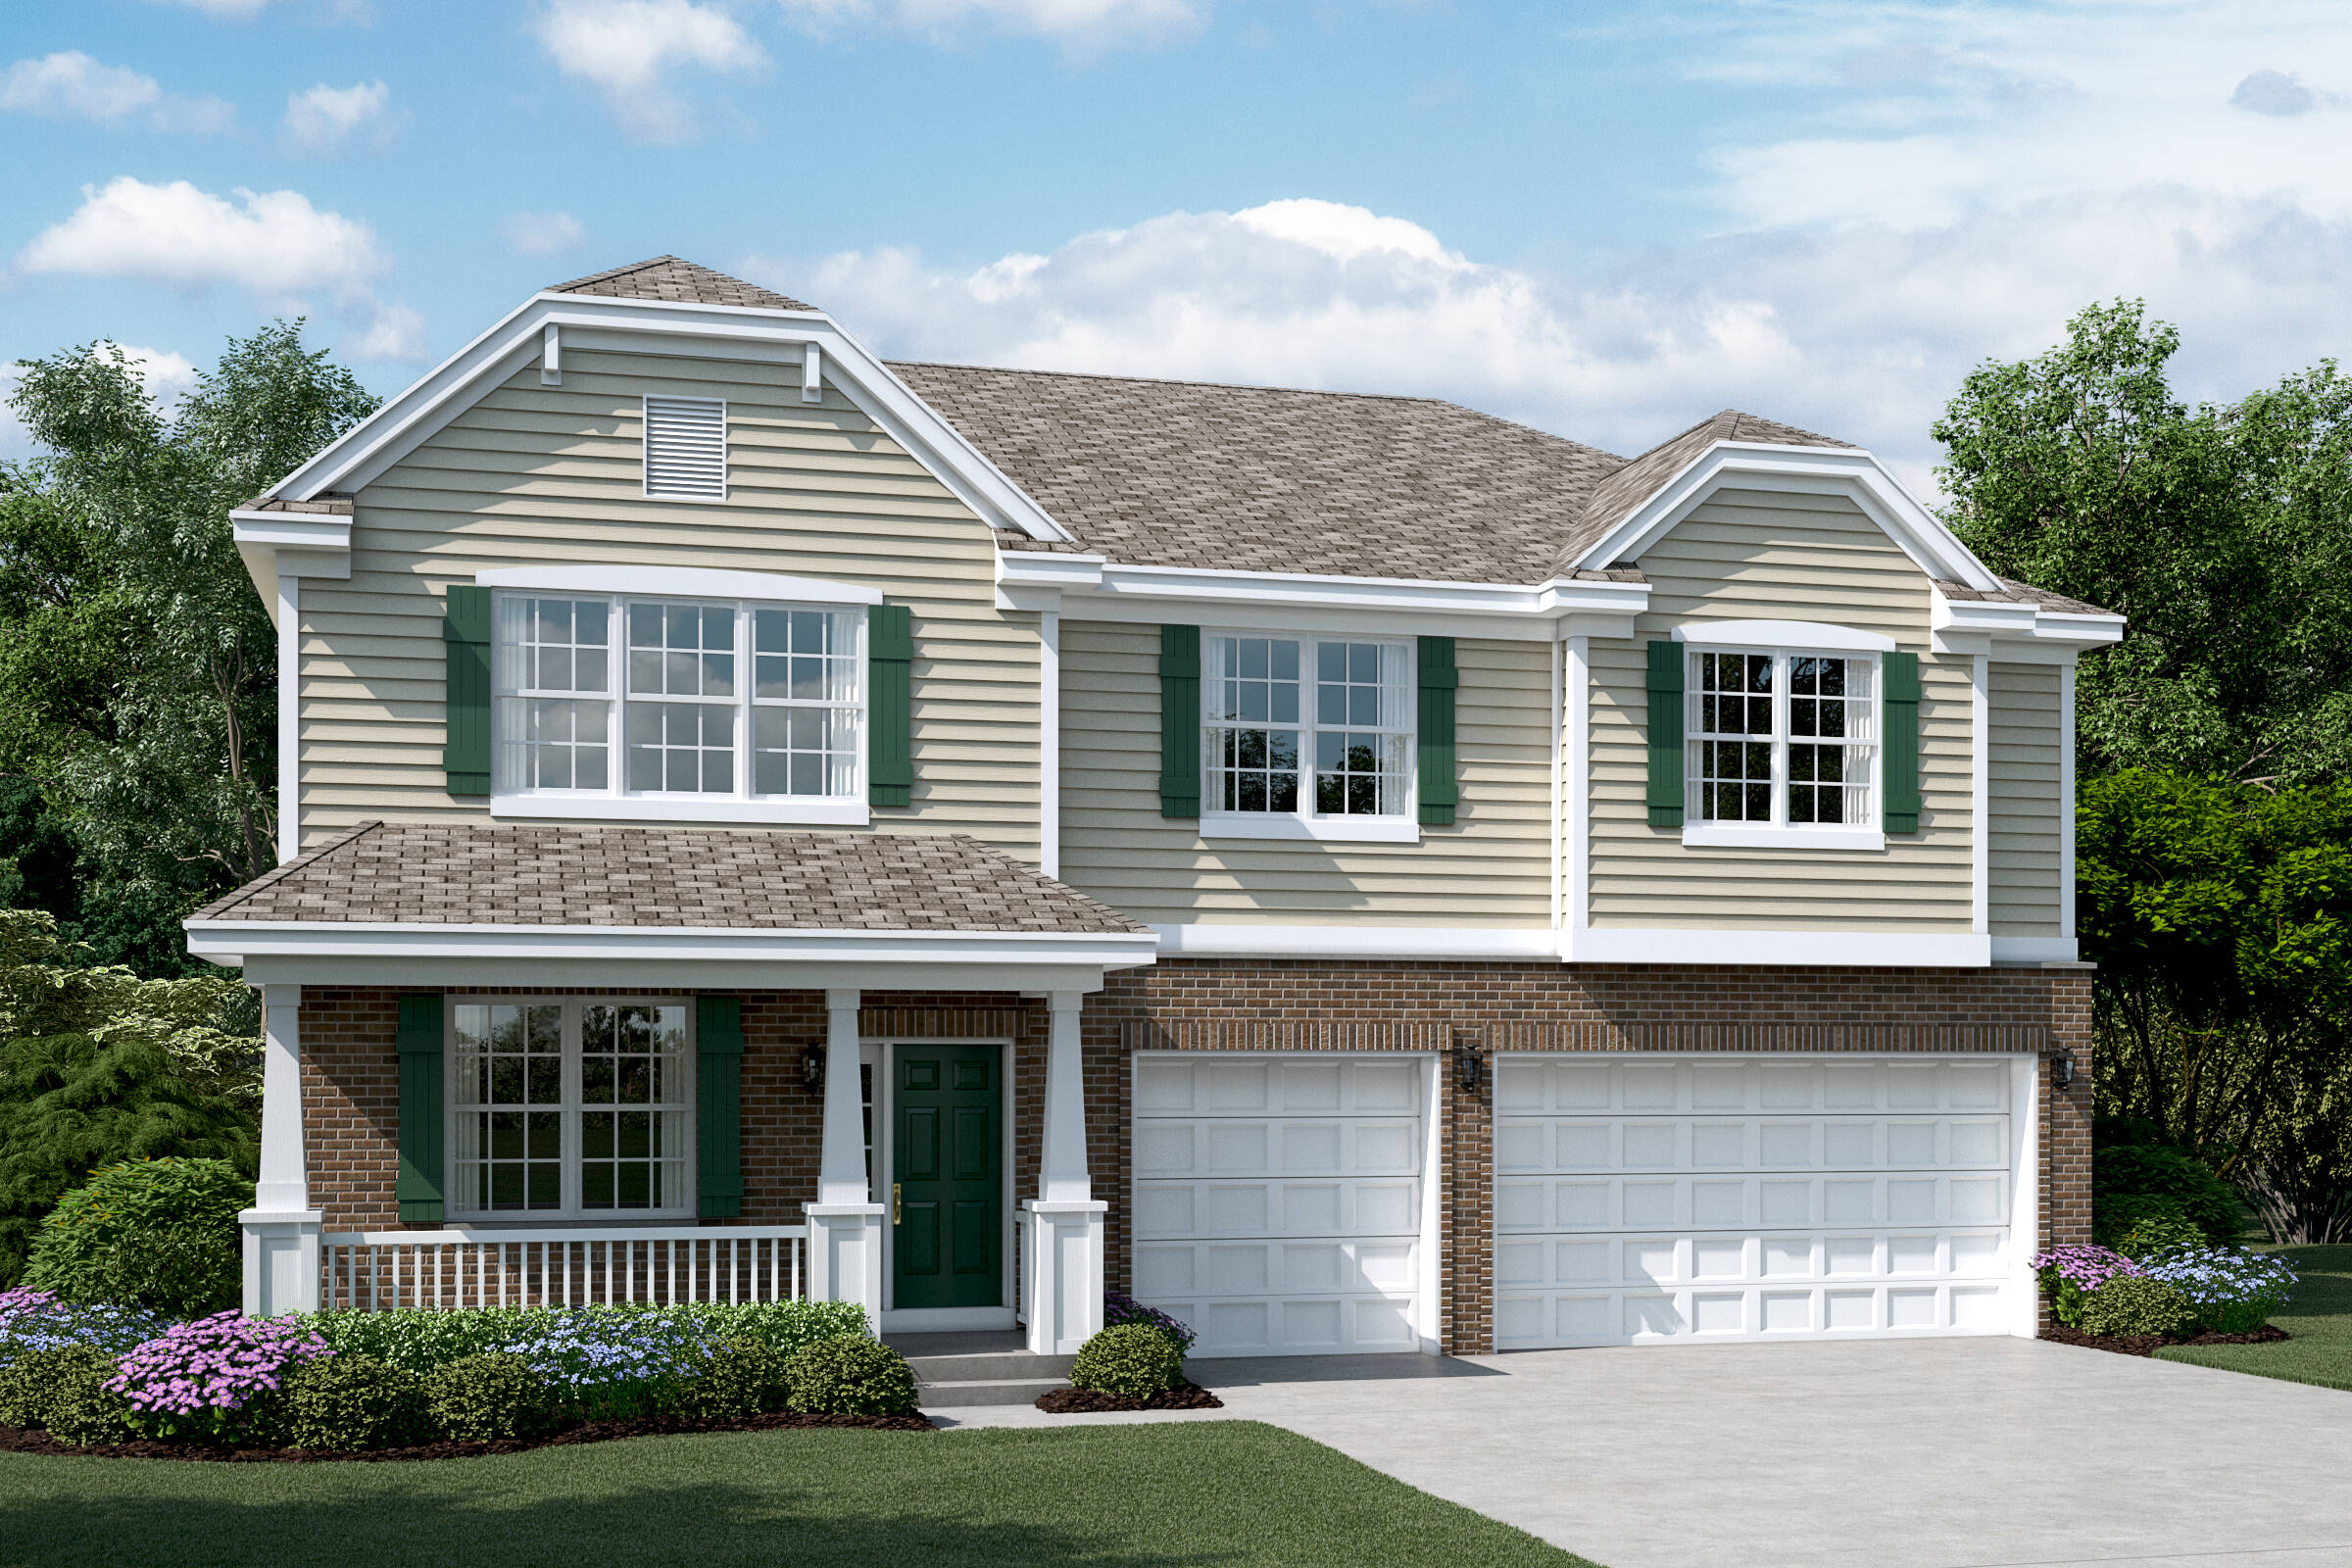 yorkshire eb new homes manhattan illinois